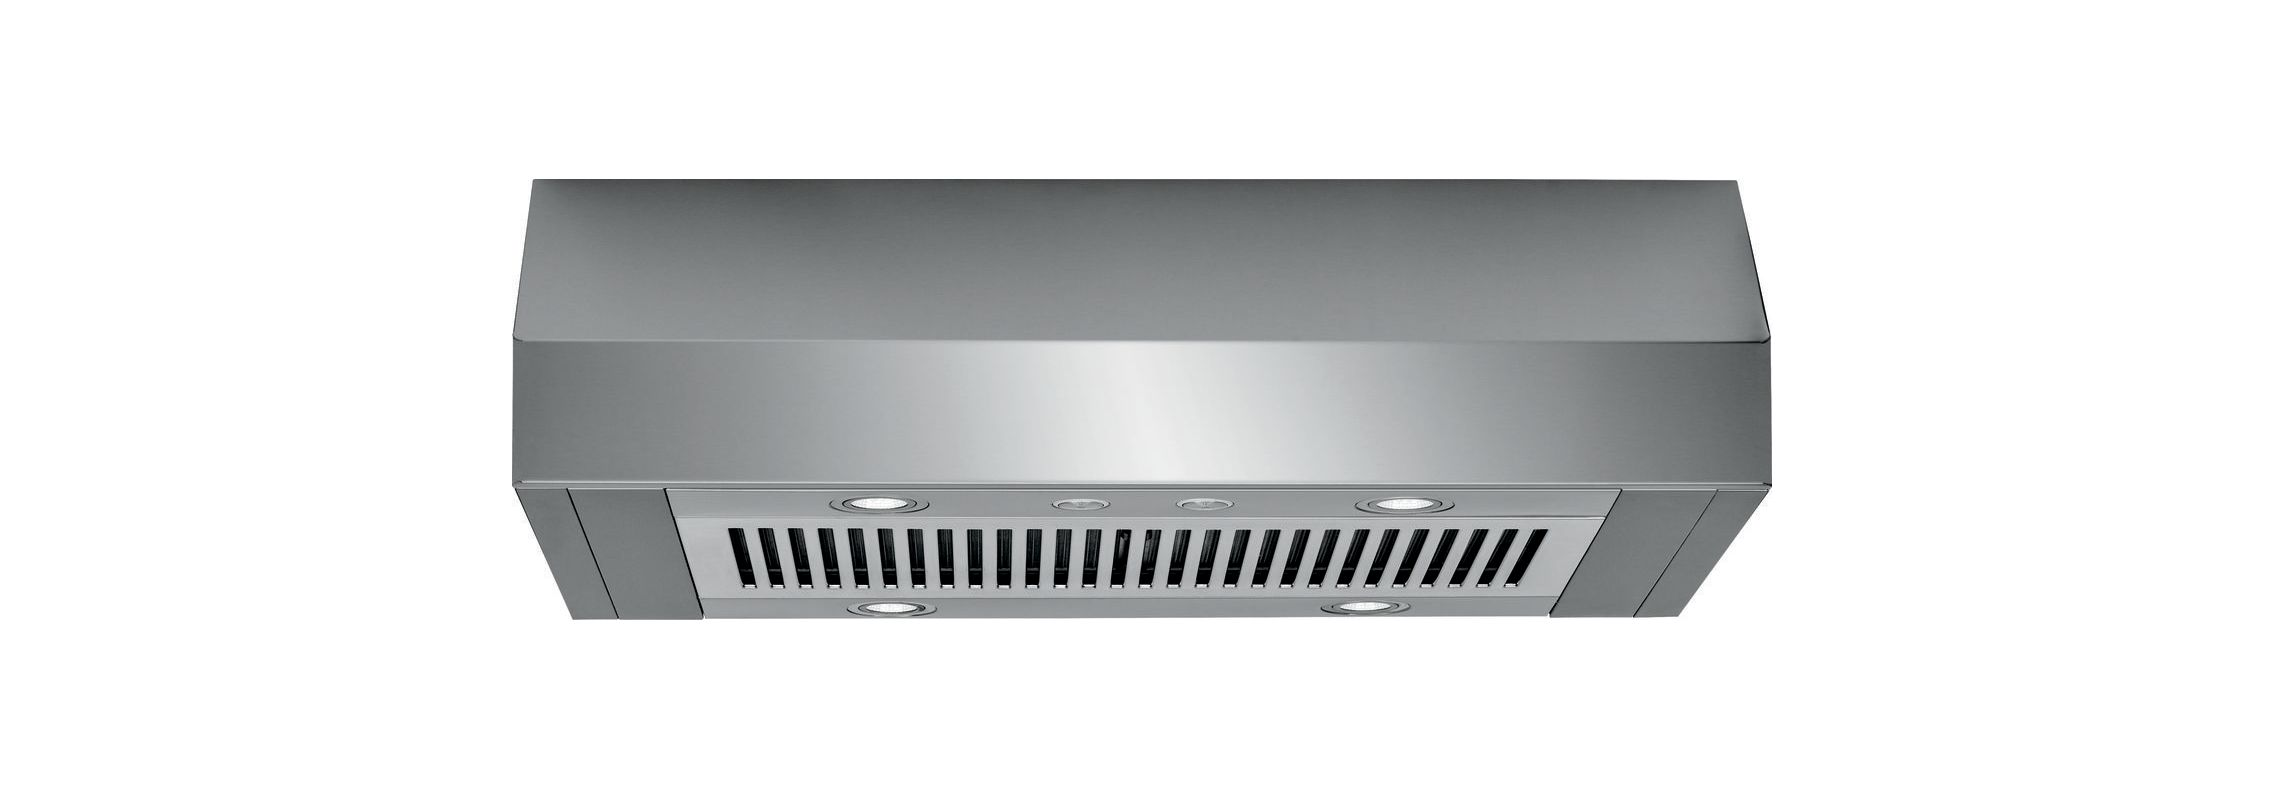 Electrolux FHWC3650 400 CFM 36 Inch Wide Under Cabinet Range Hood with PowerPlus photo